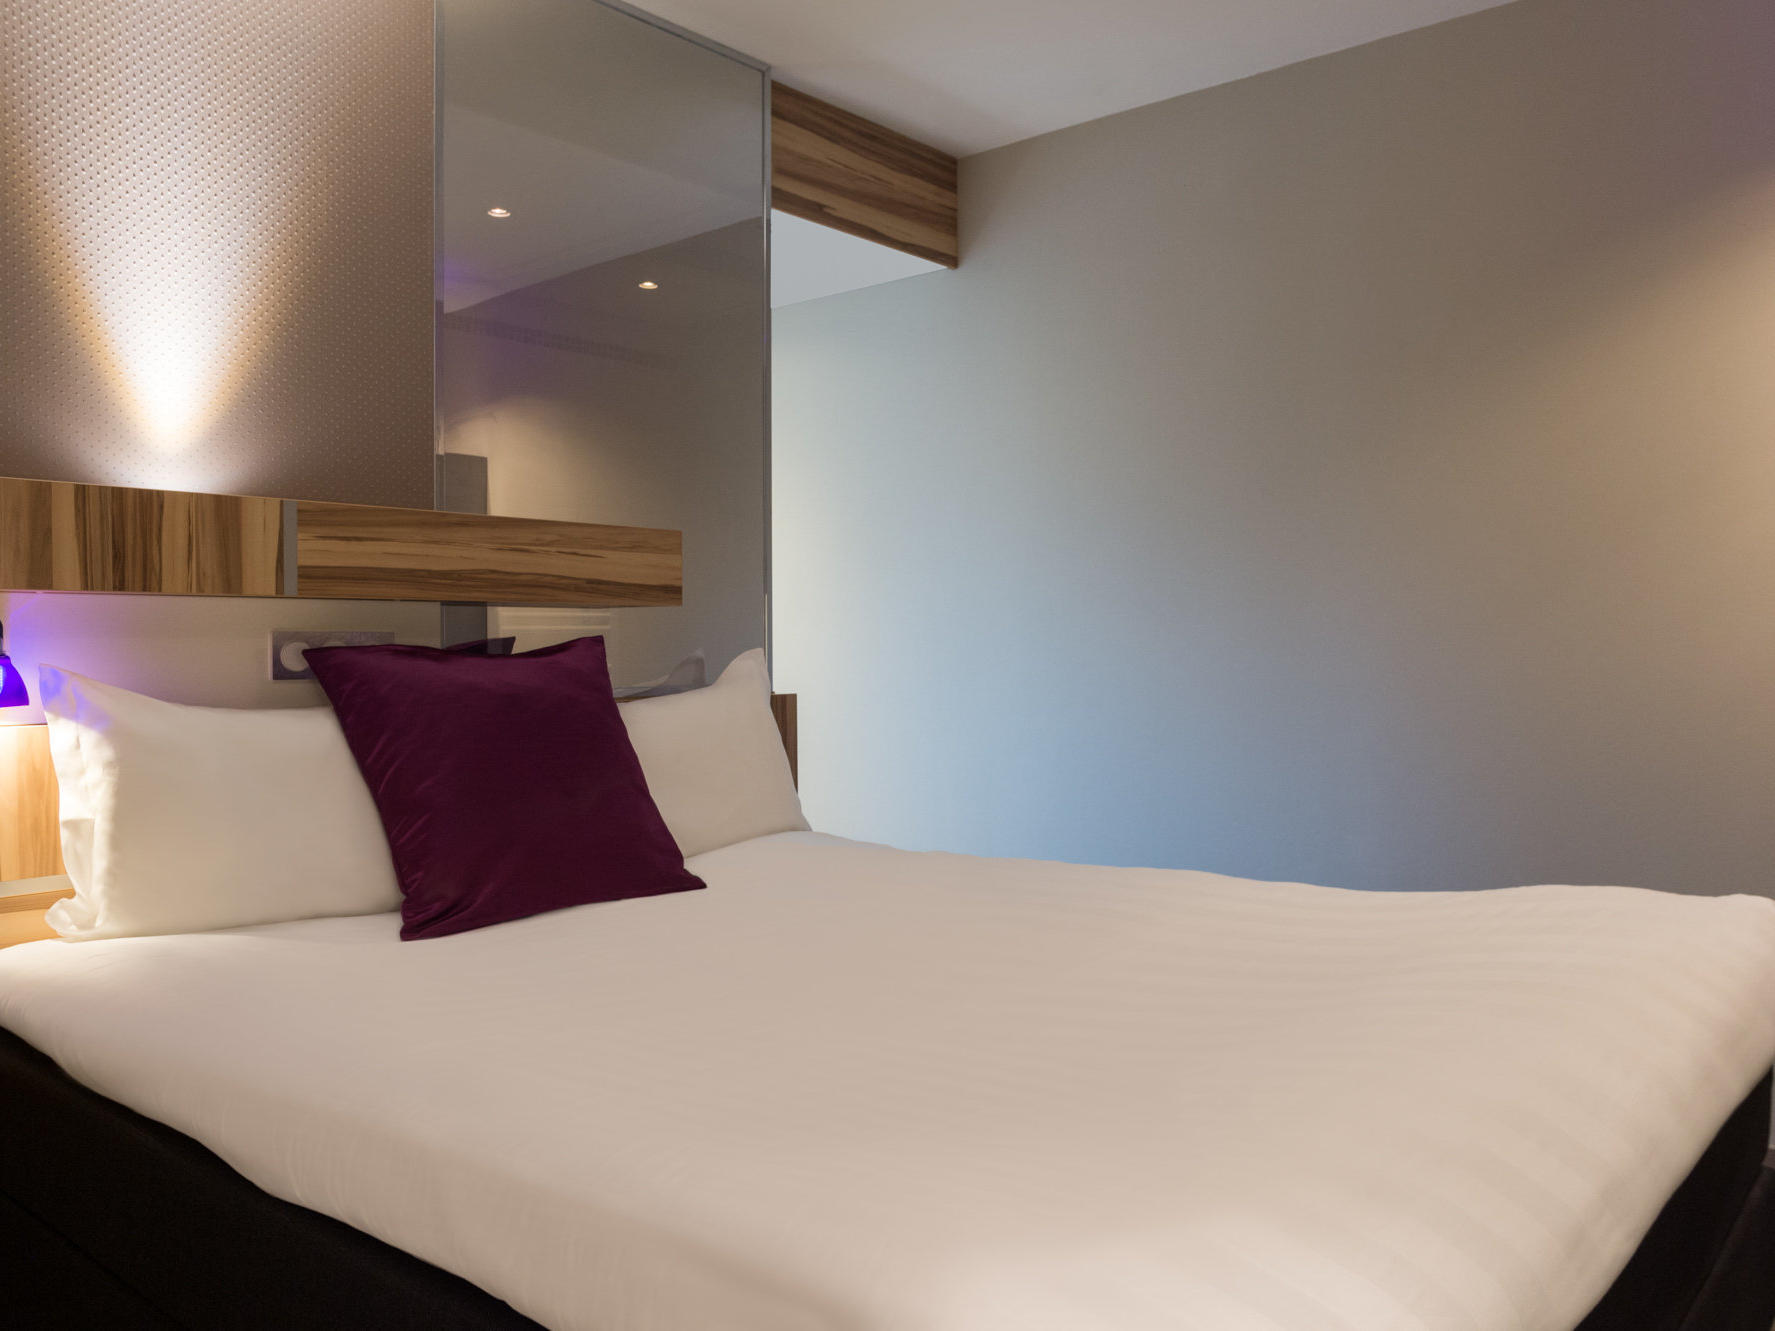 The Superior Double Room at the Grand Hôtel Saint-Pierre with one large double bed